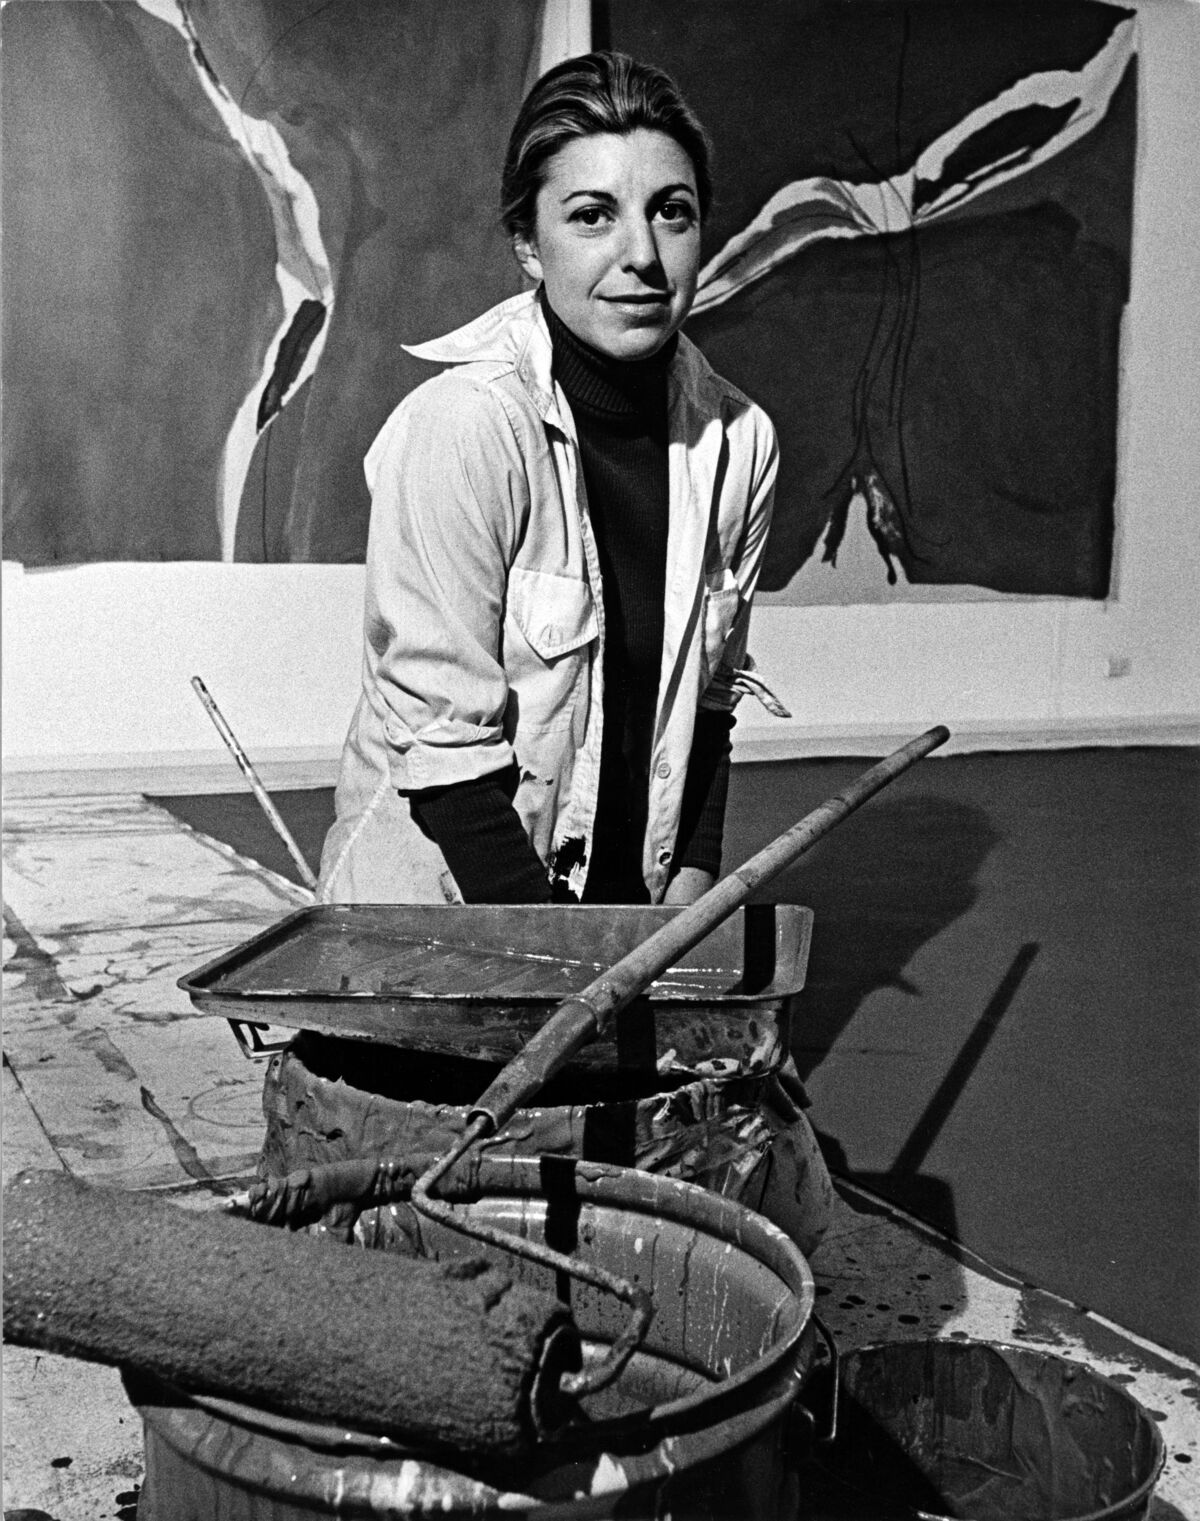 Portrait of Helen Frankenthaler in her New York studio, 1971. Photo by Jack Mitchell/Getty Images